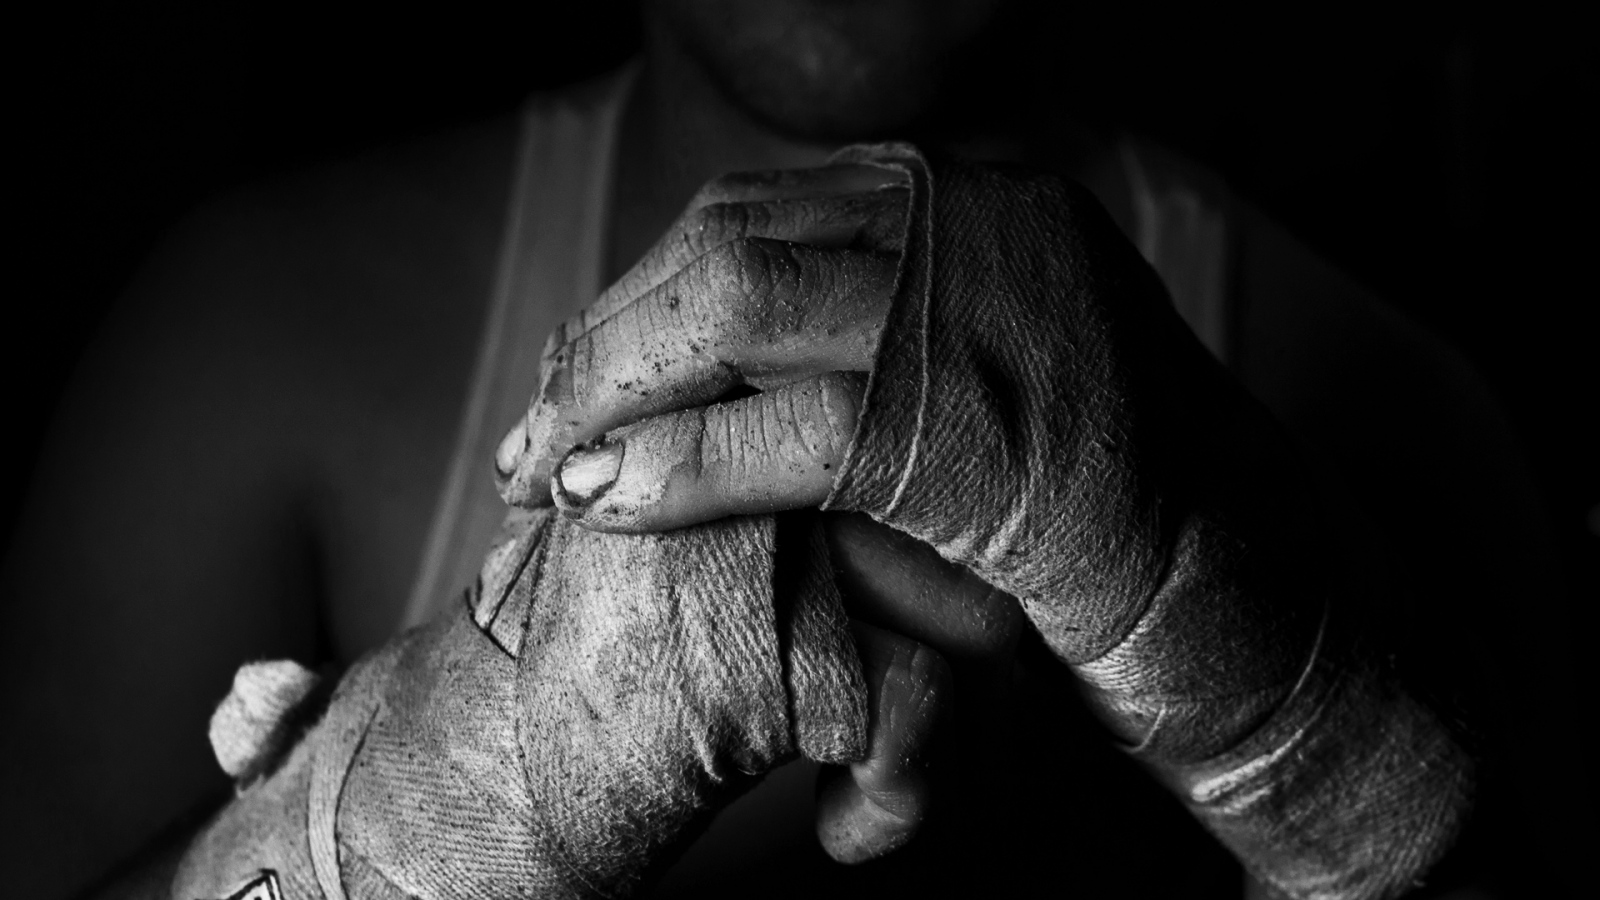 Hand fighter bandages bw 99142 1600x900